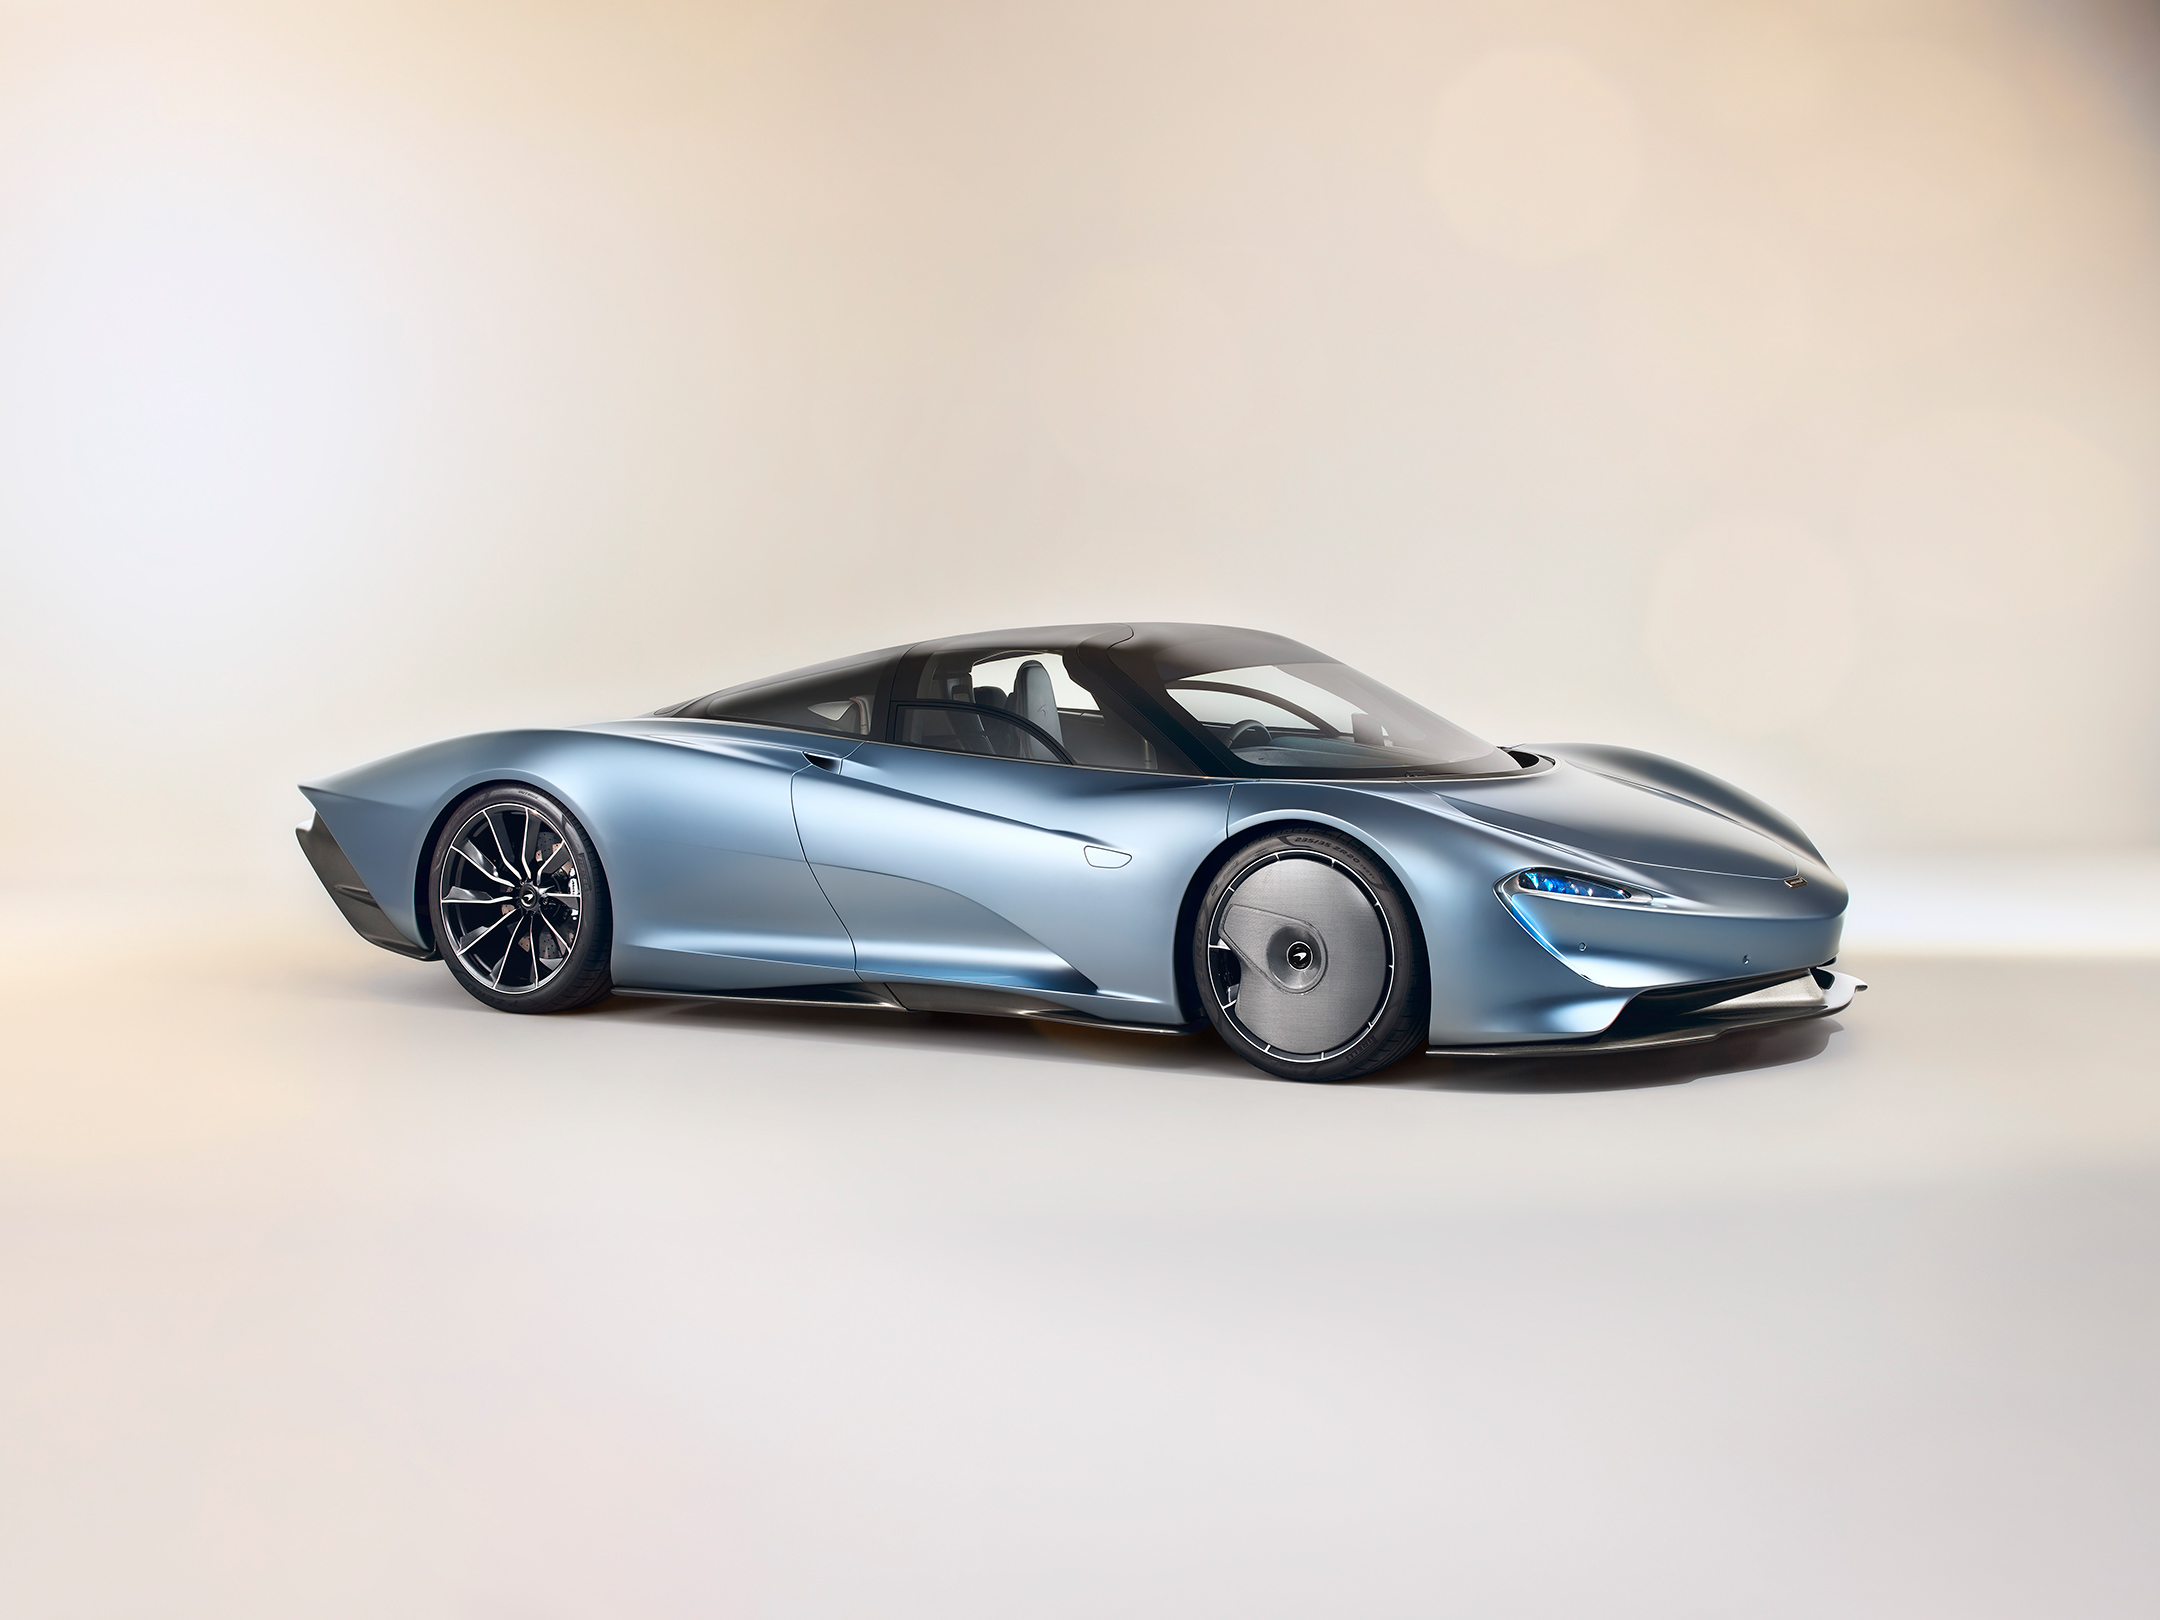 McLaren Speedtail - 2018 - front side-face / profil